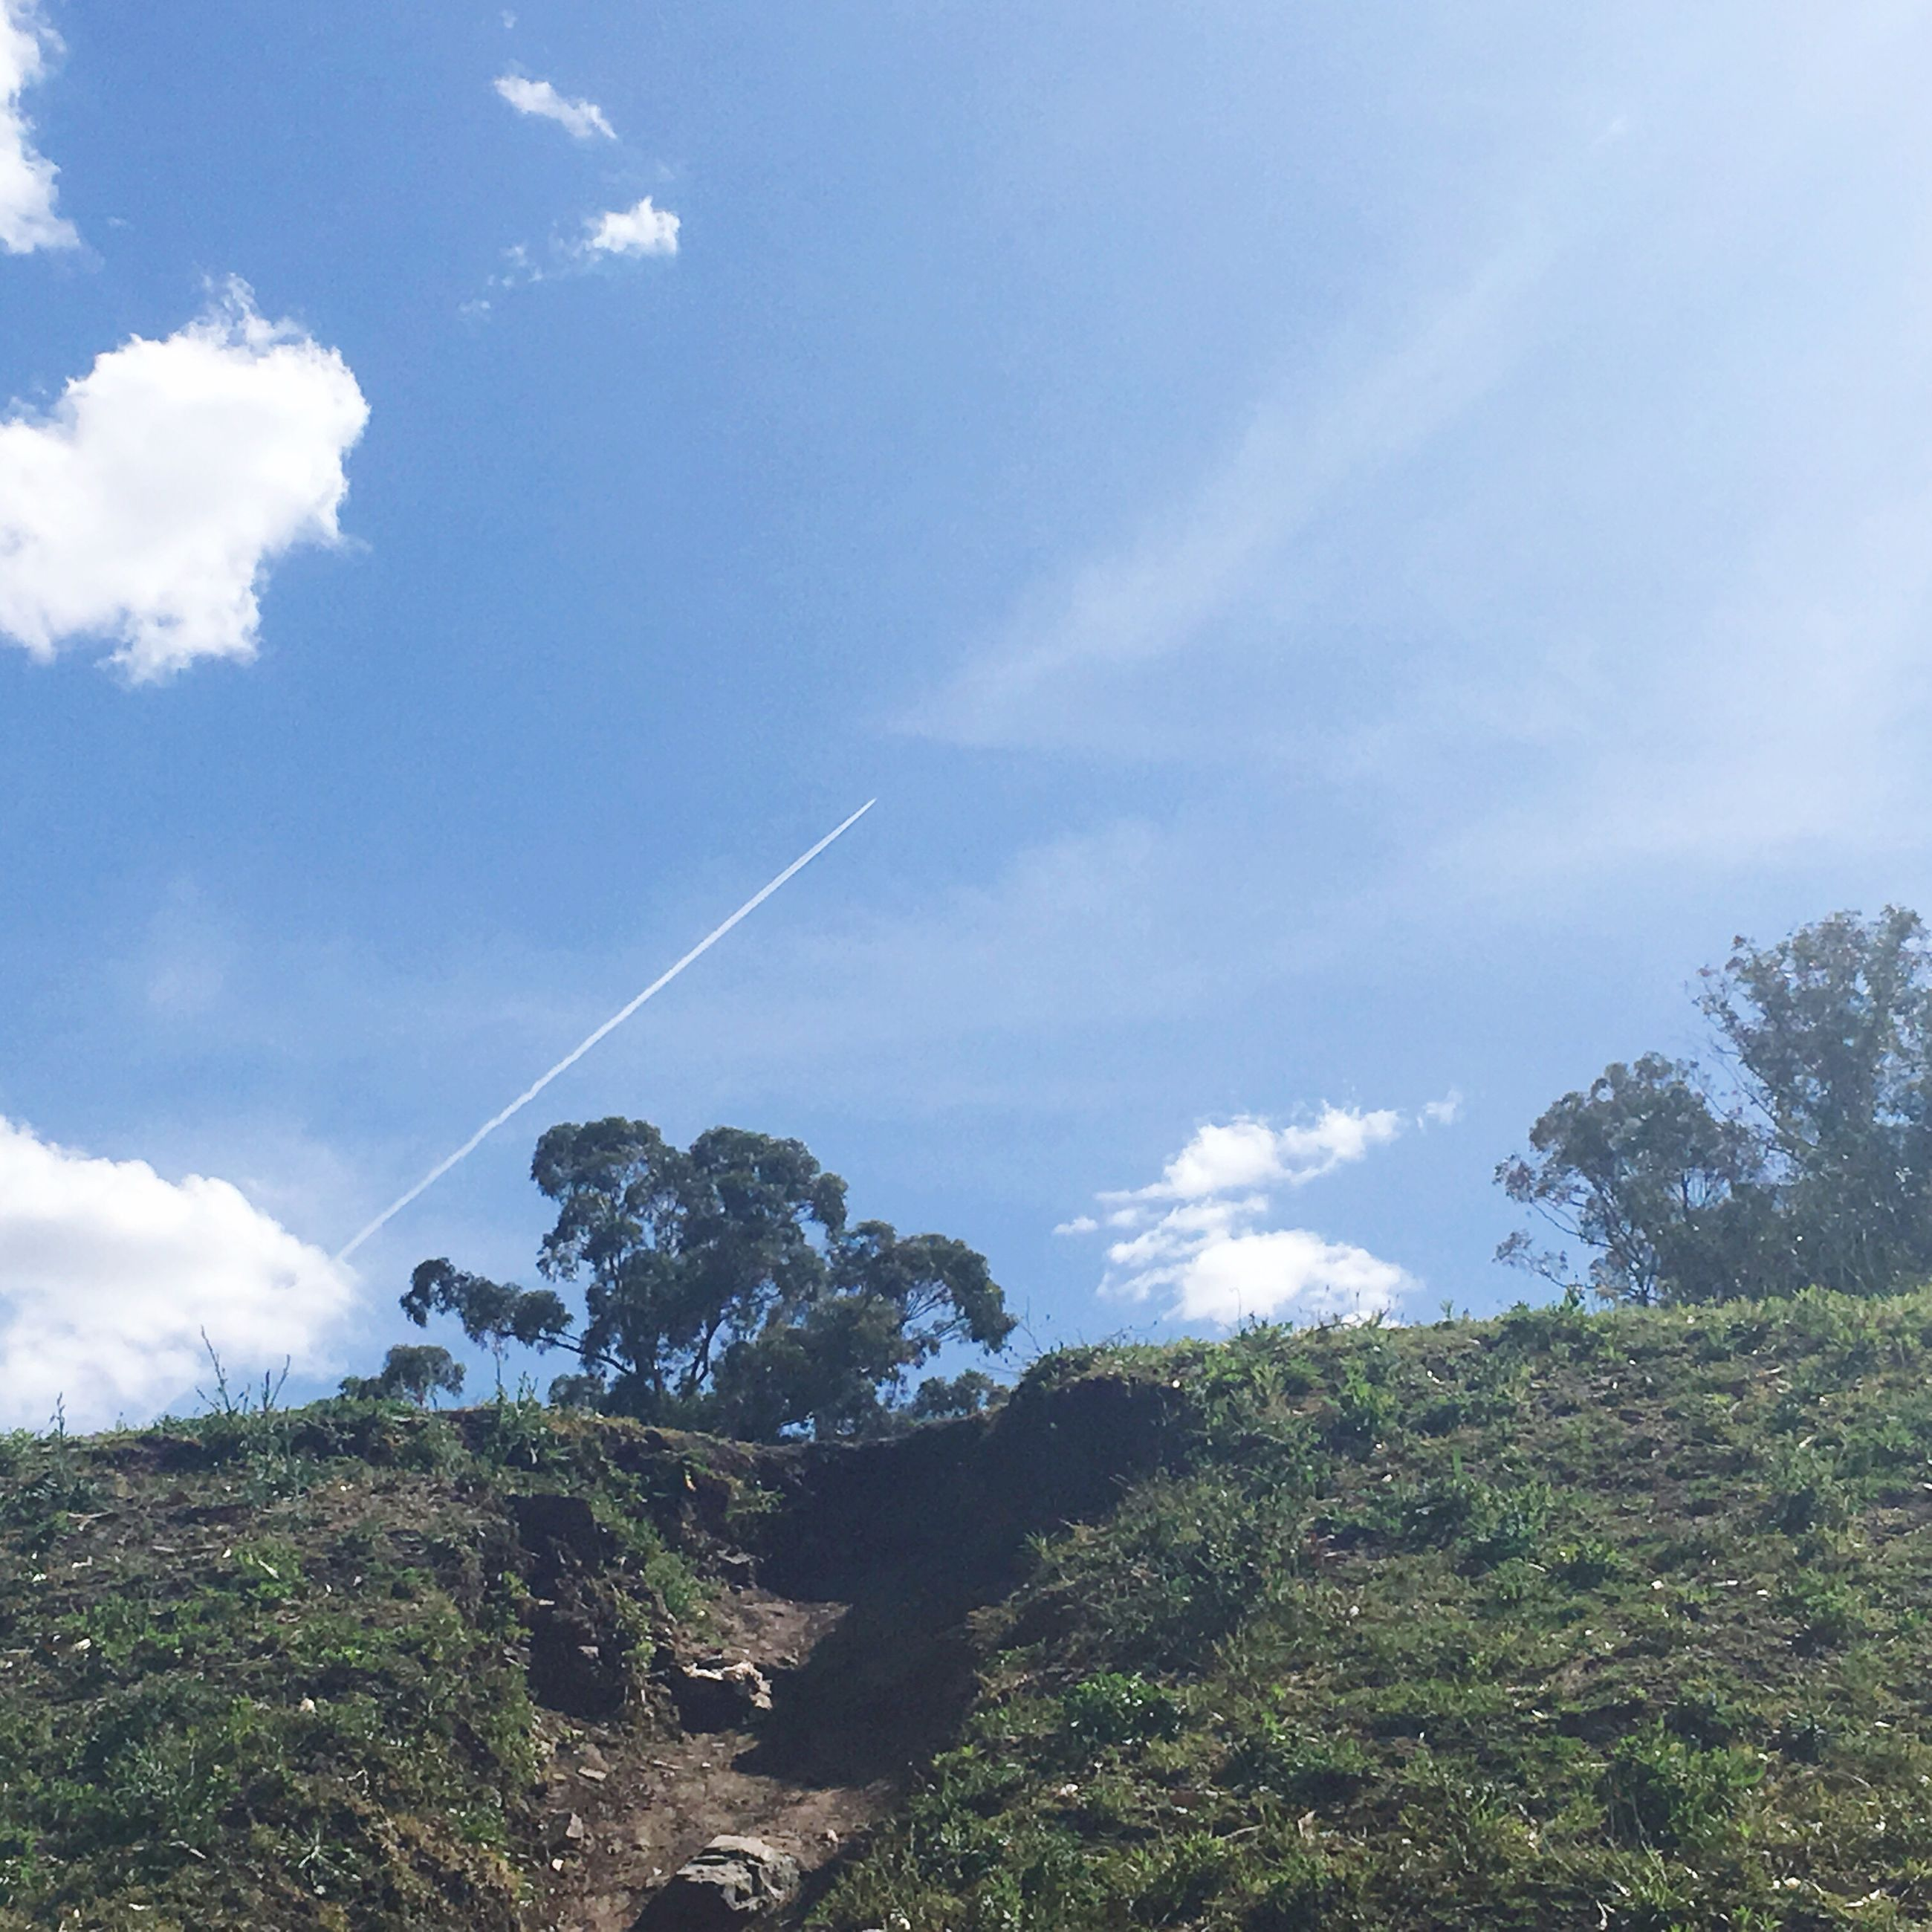 sky, nature, low angle view, beauty in nature, tree, scenics, no people, vapor trail, growth, outdoors, cloud - sky, tranquility, day, contrail